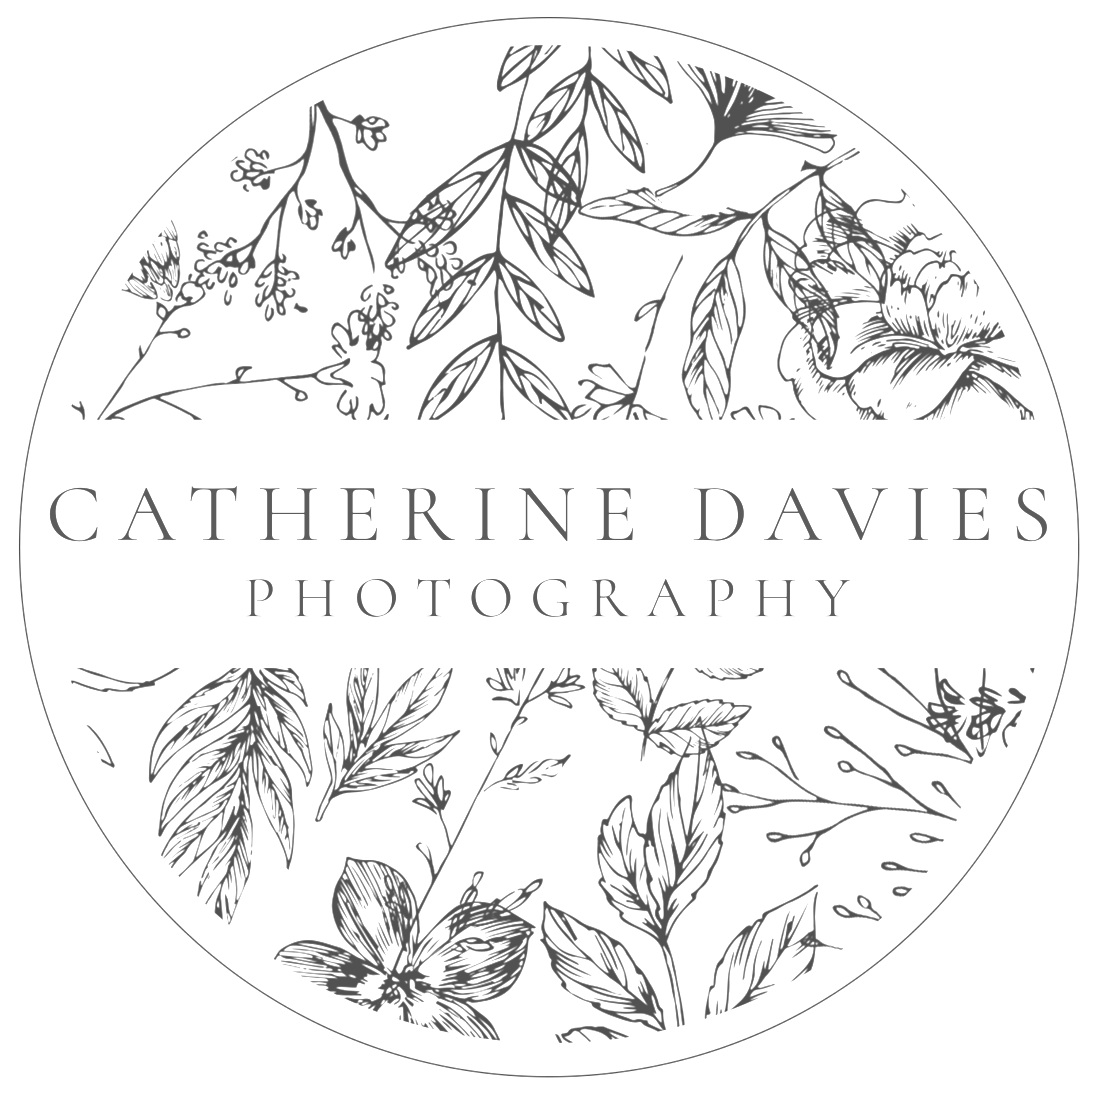 Catherine Davies Photography